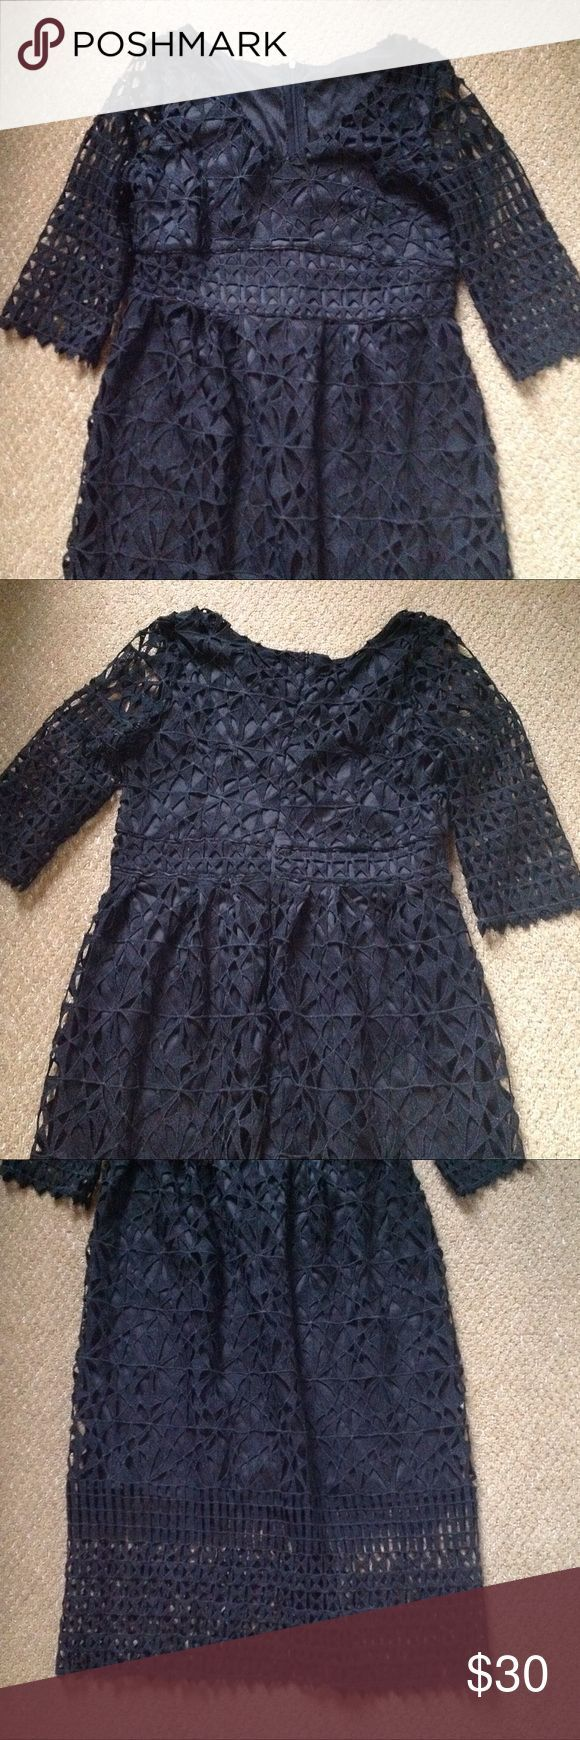 Black Geometric cutout lace dress A very edgy and modern take on a lace fitted d…